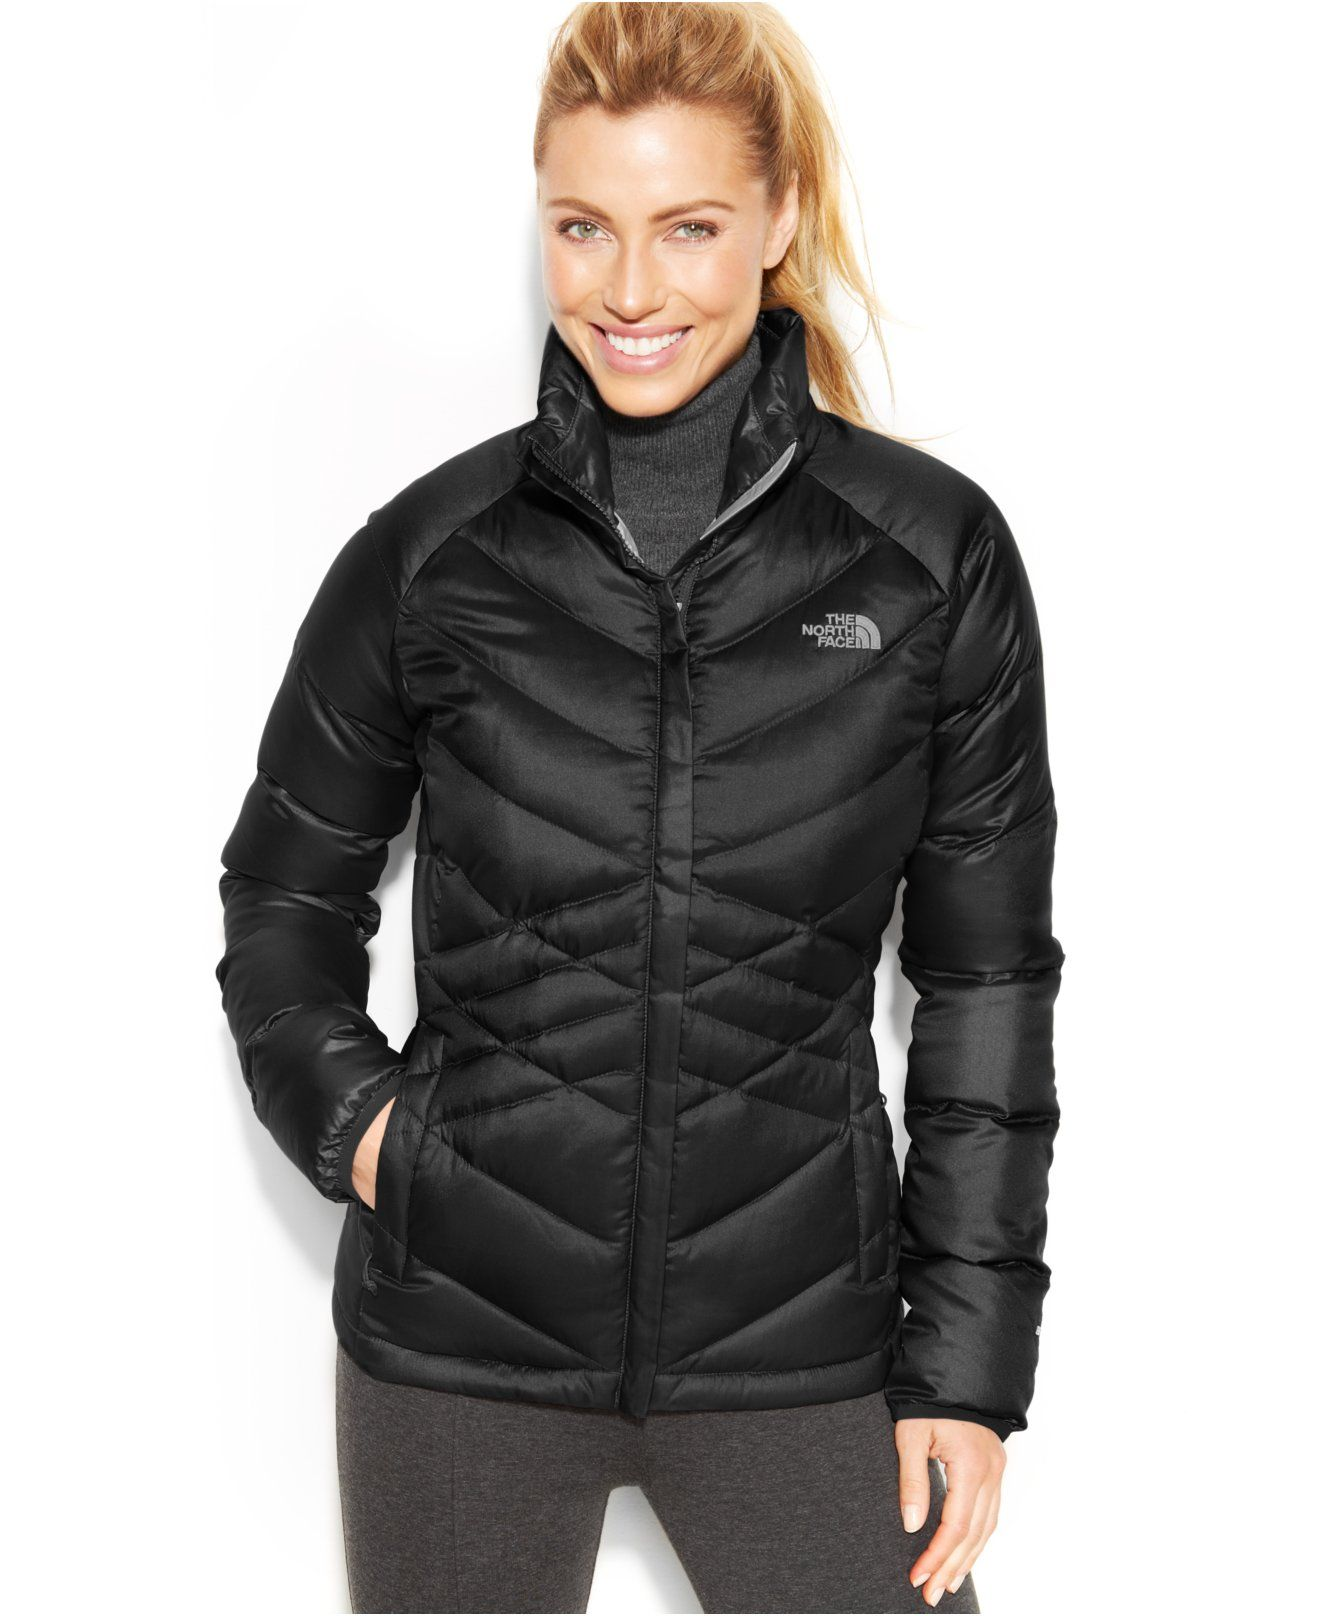 c7b3684e9 The North Face Aconcagua Down Puffer Jacket - Jackets & Blazers ...